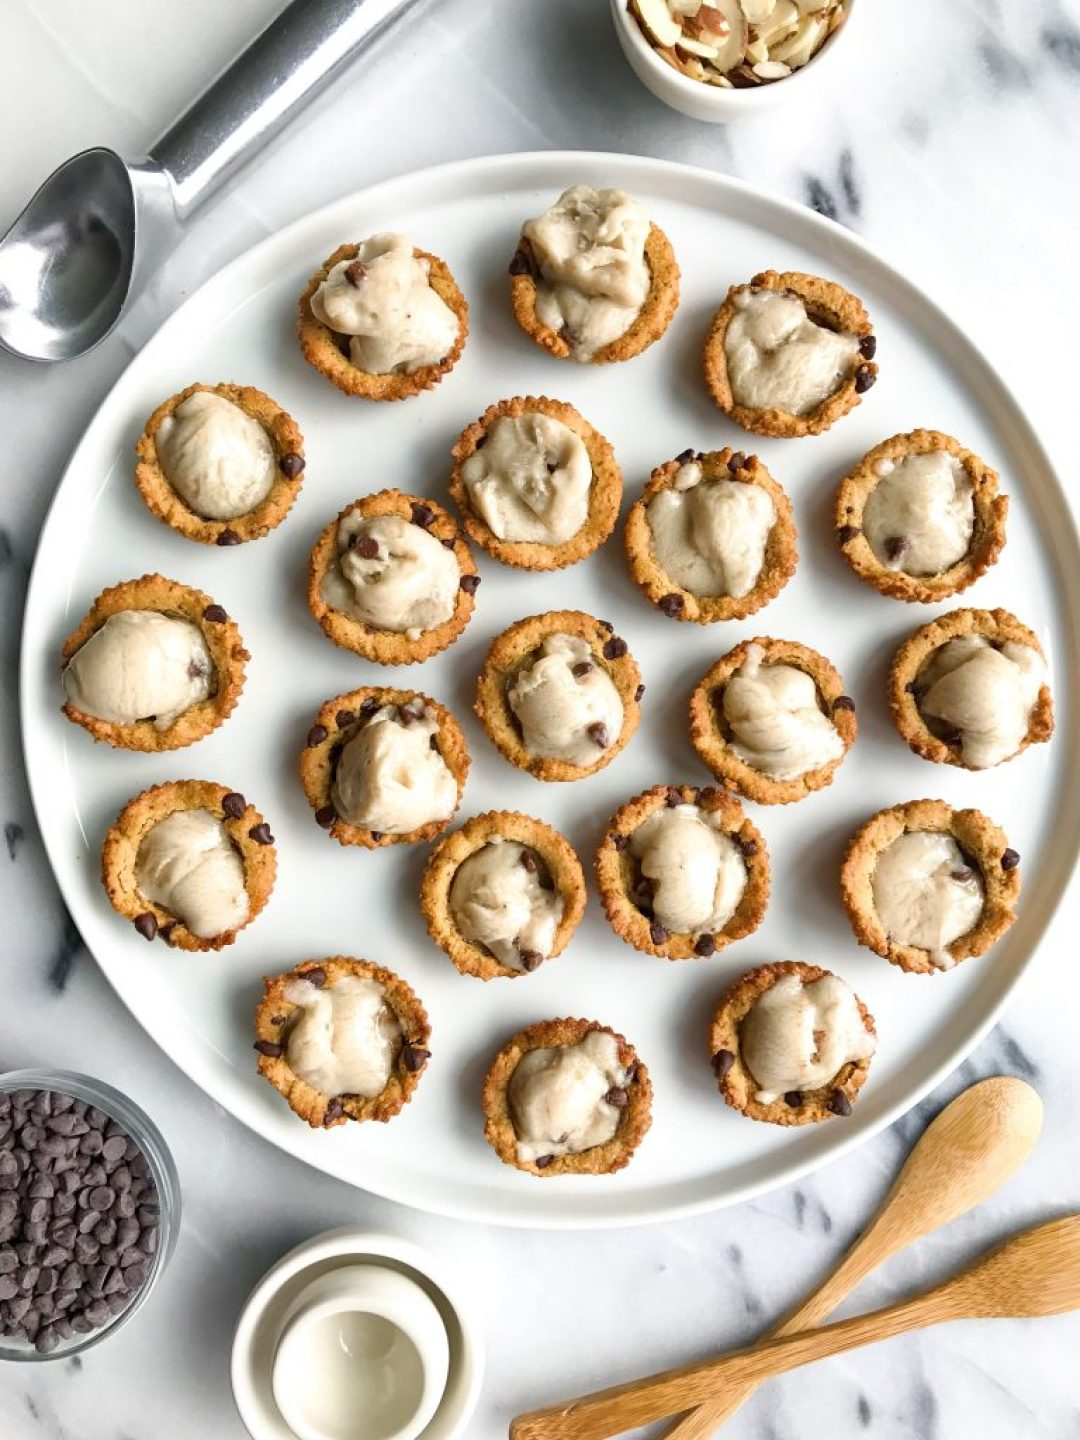 Mini Magical Chocolate Chip Cookie Bowls (grain + dairy-free) filled with almond milk ice cream!